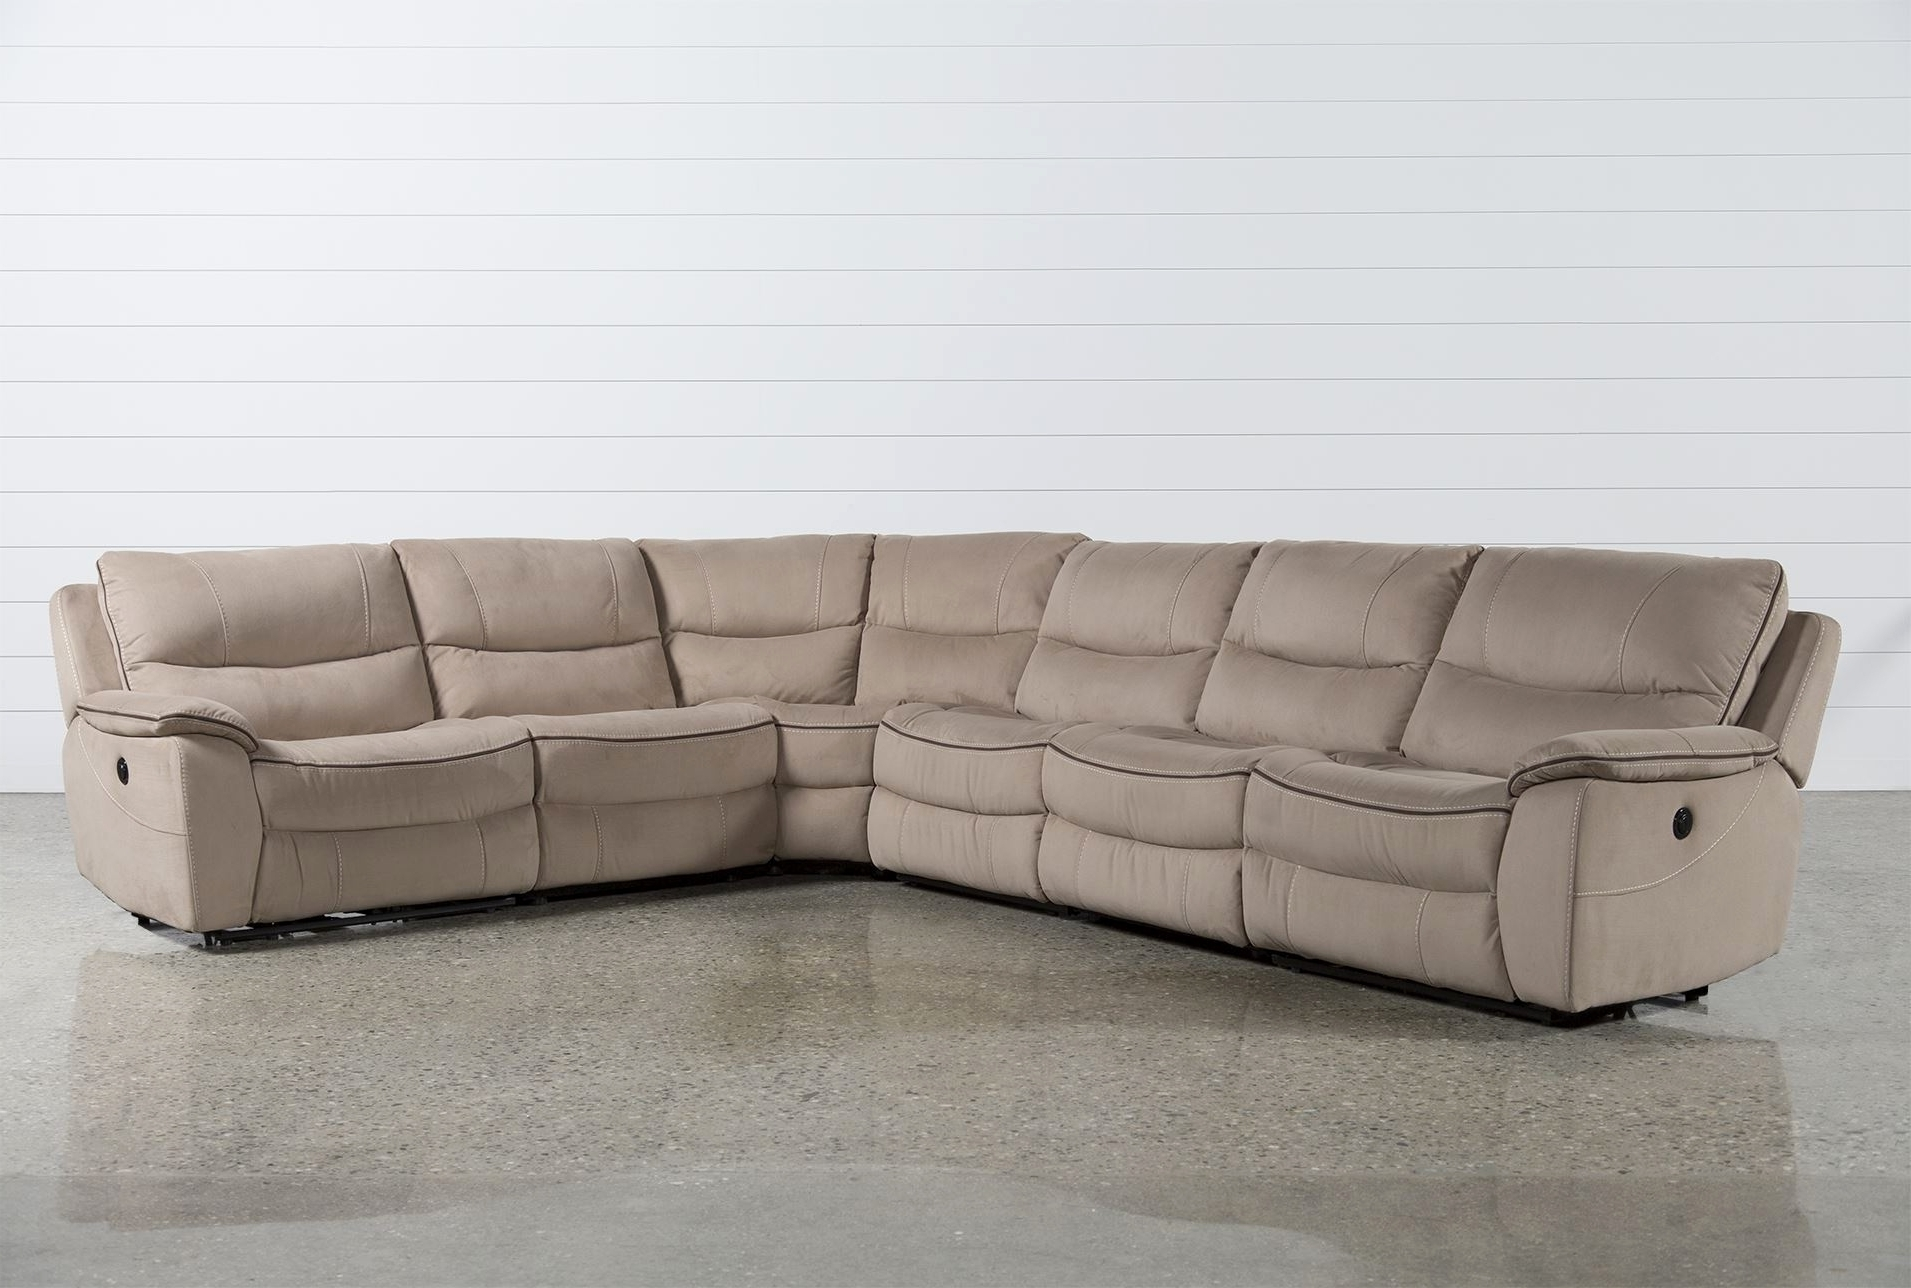 Luxury 6 Piece Sectional Sofa 2018 – Couches Ideas For Famous Sam Levitz Sectional Sofas (View 11 of 20)